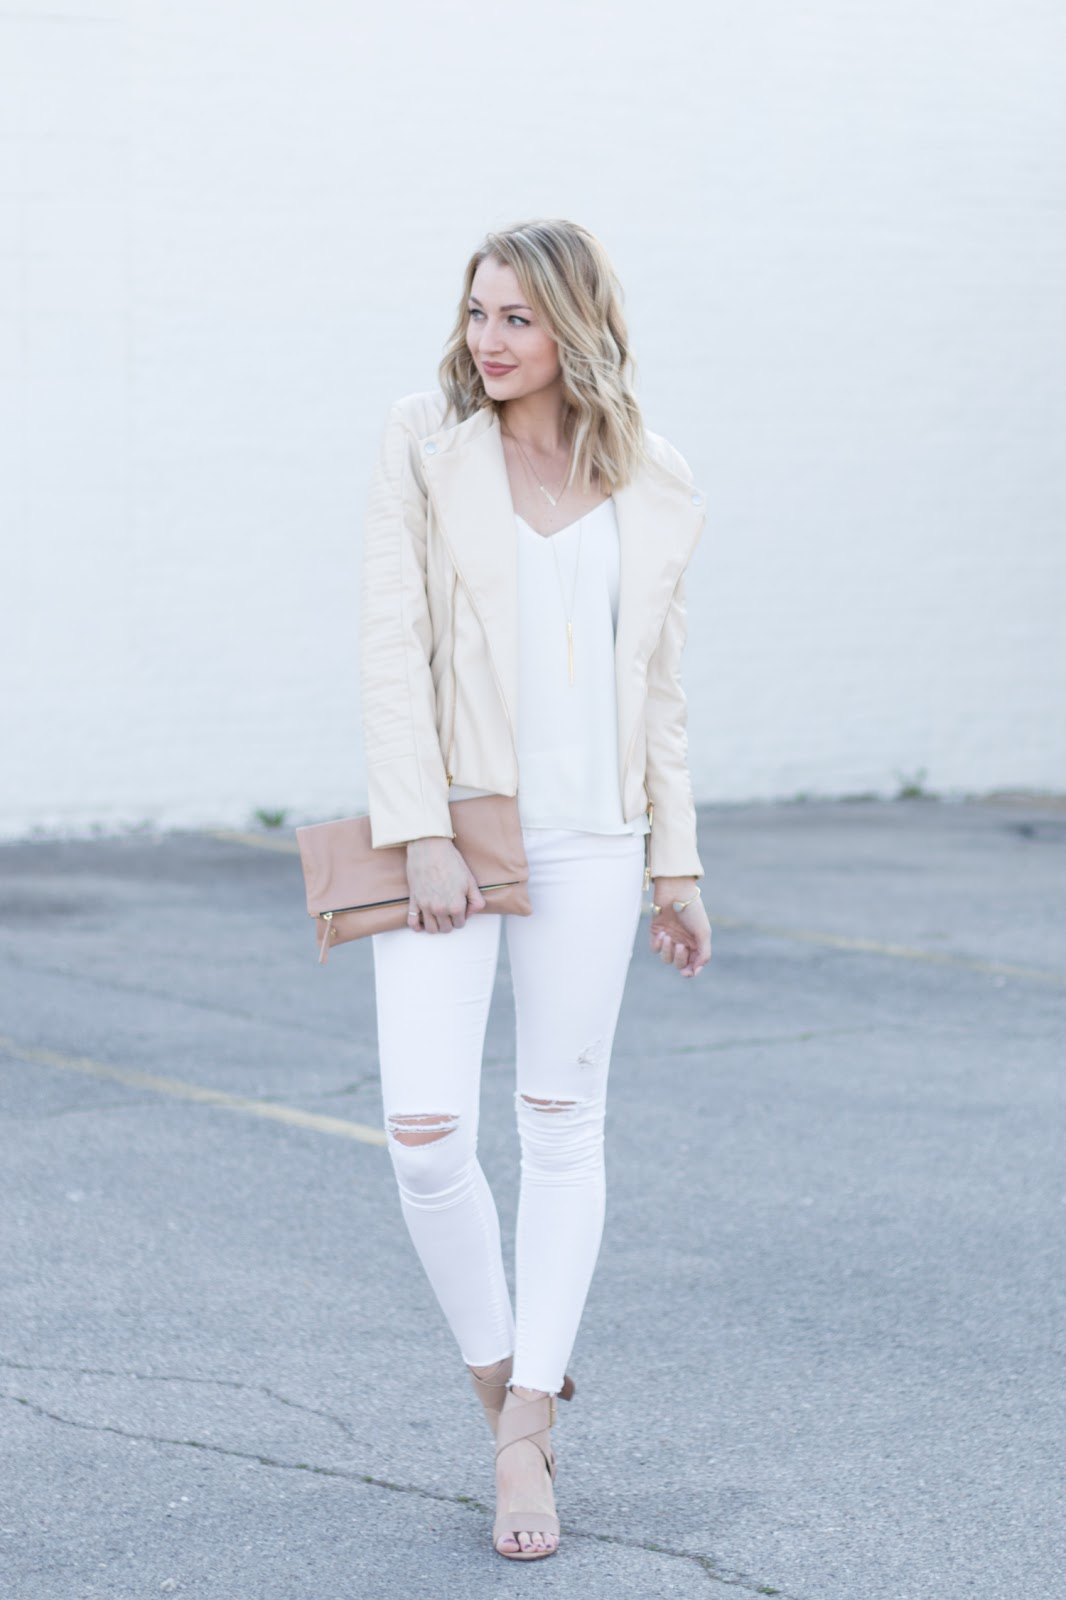 Blush & white spring outfit